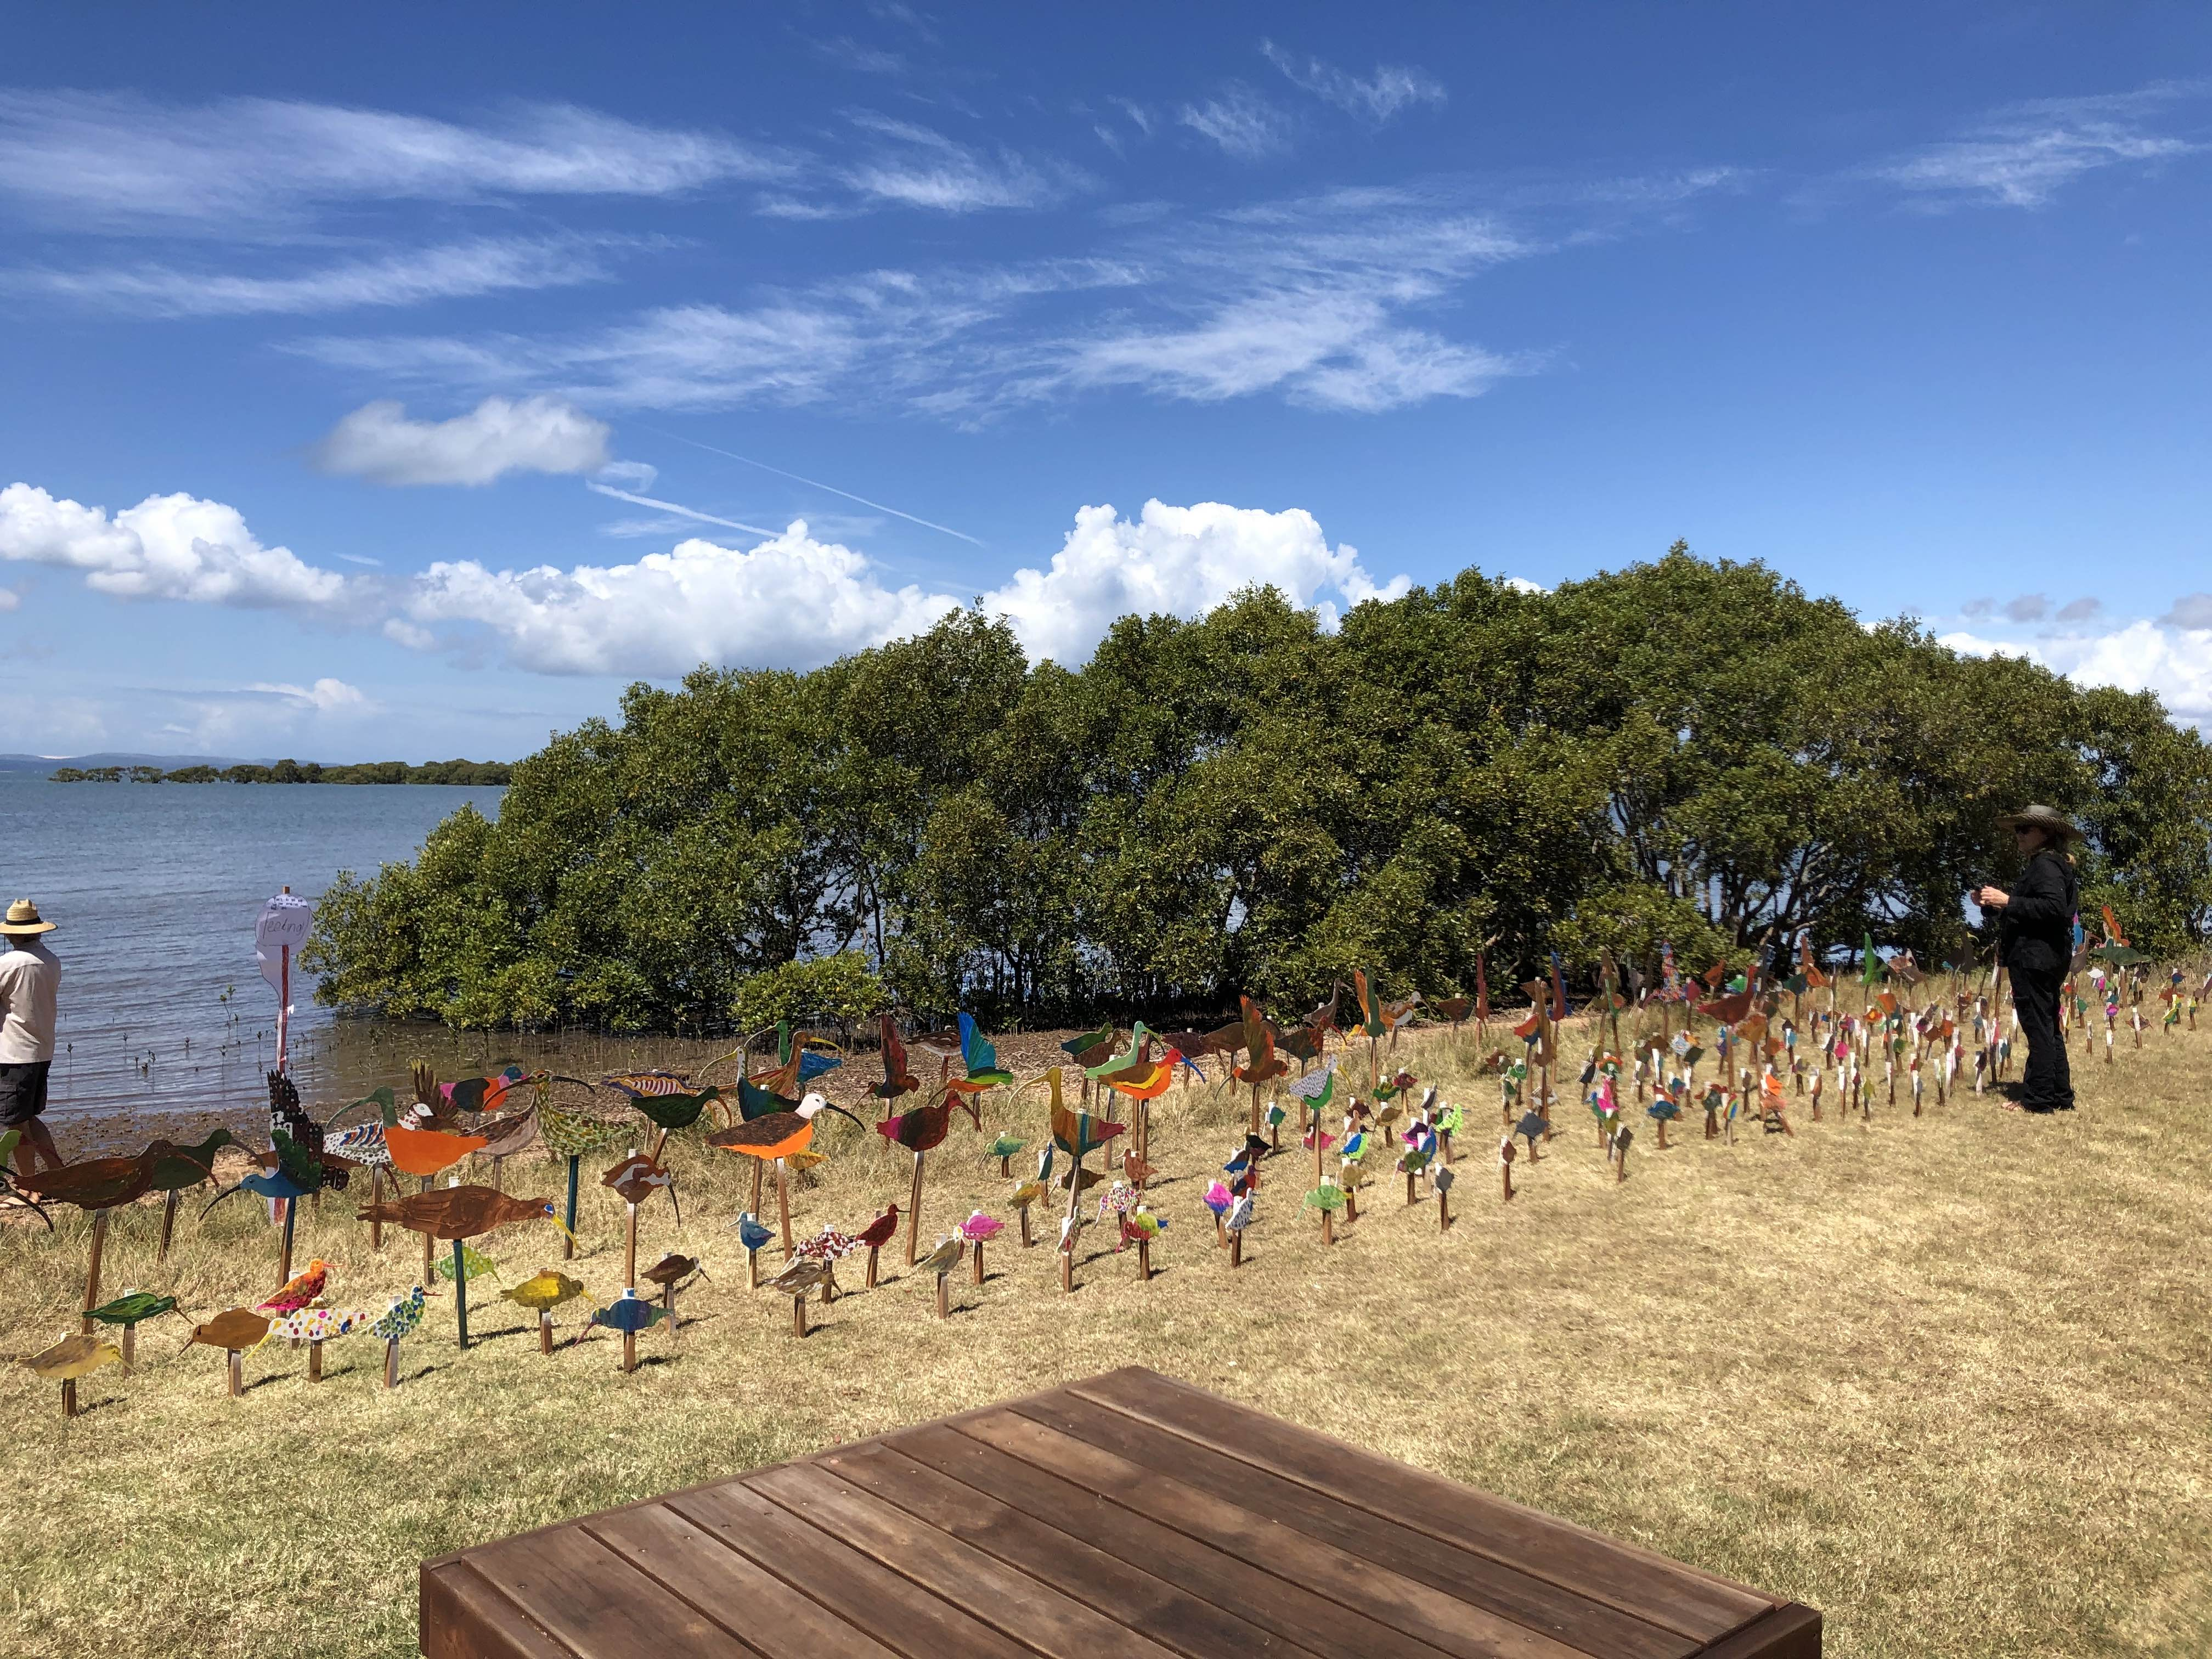 A private developer wants to build 3,600 apartments on the water here at Moreton Bay | I'm supporting locals' fight to save this precious wetland